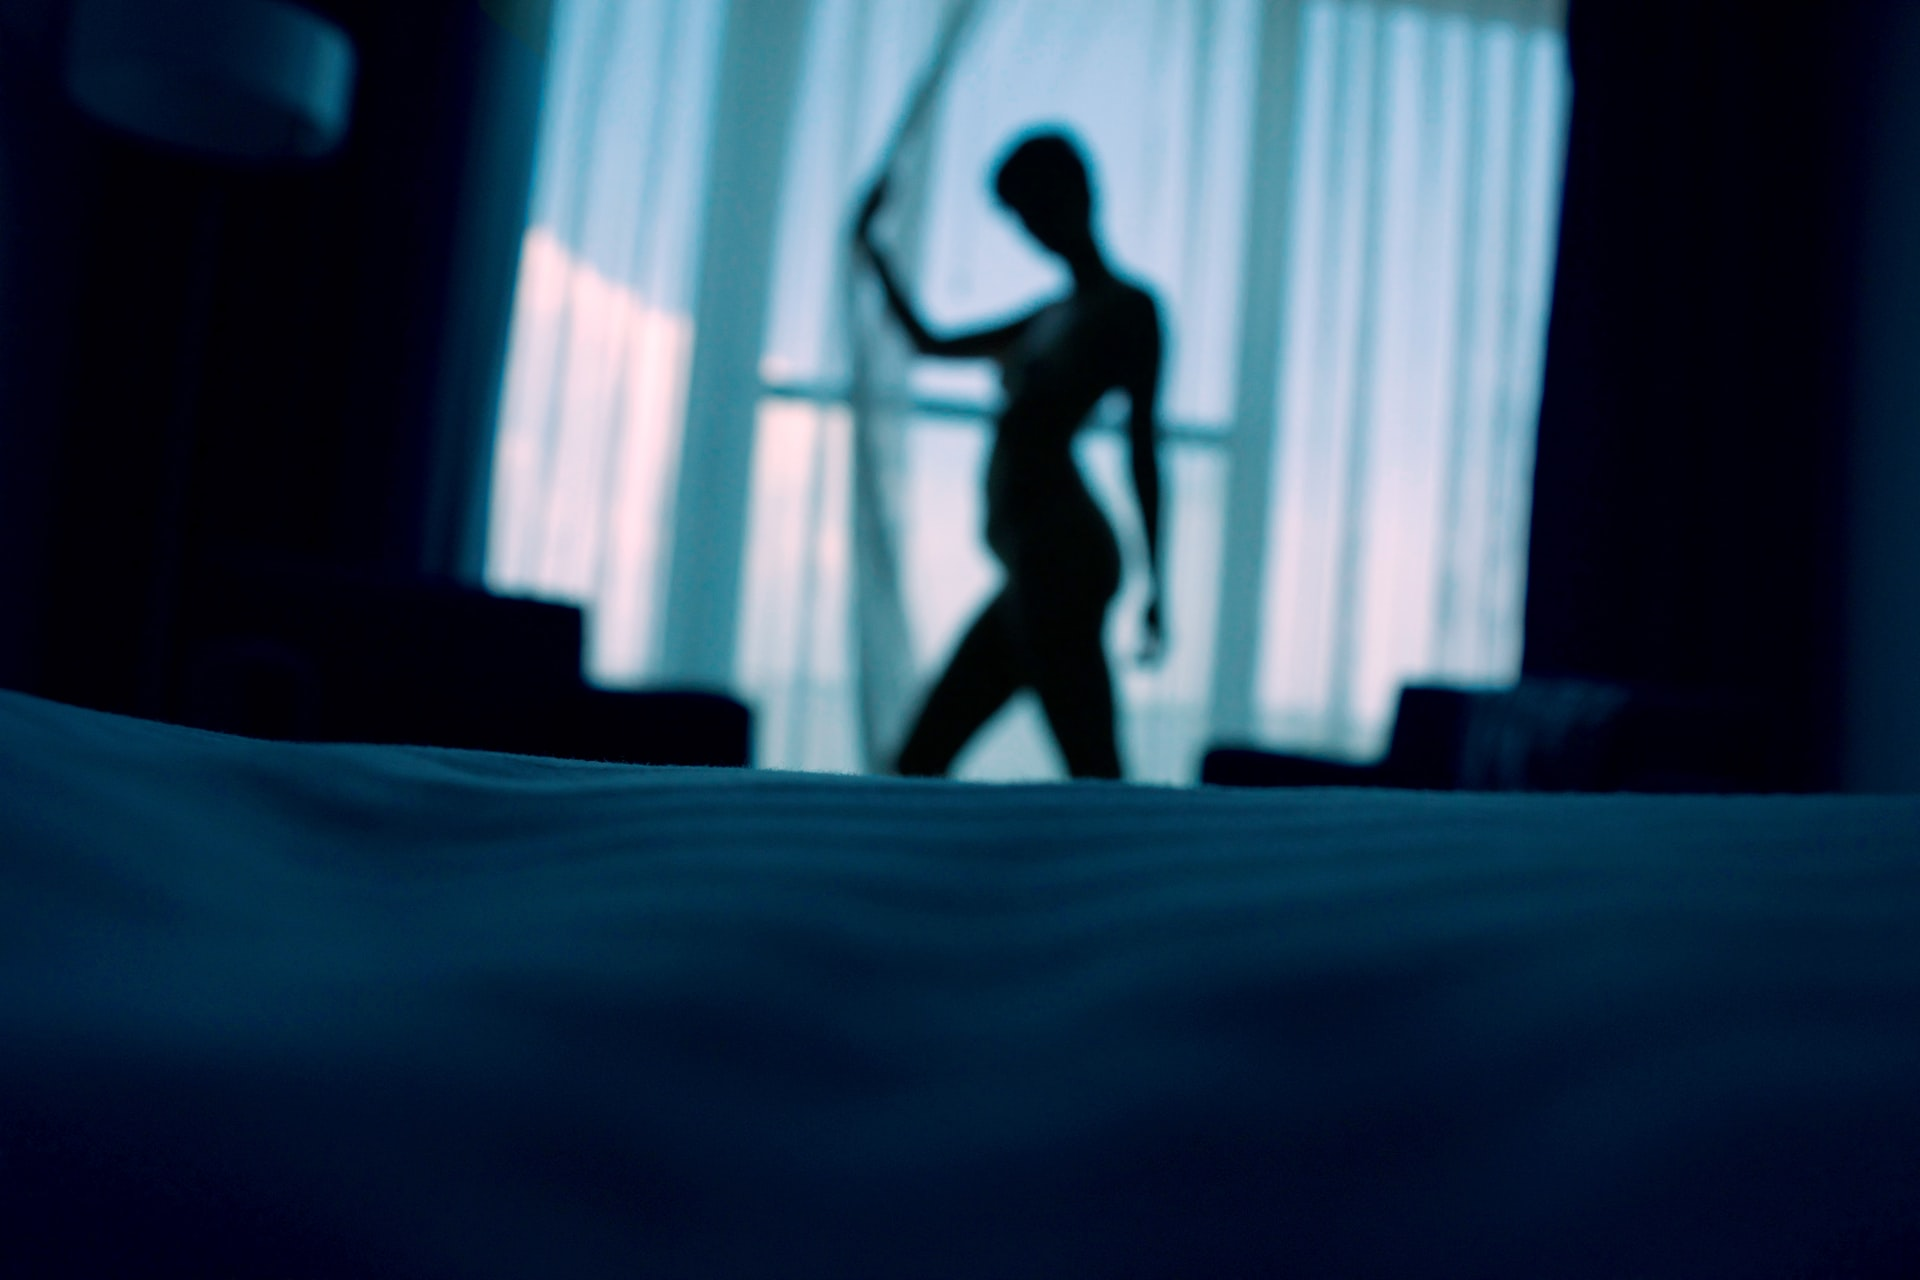 Silhouette of a nude woman standing in front of balcony curtains